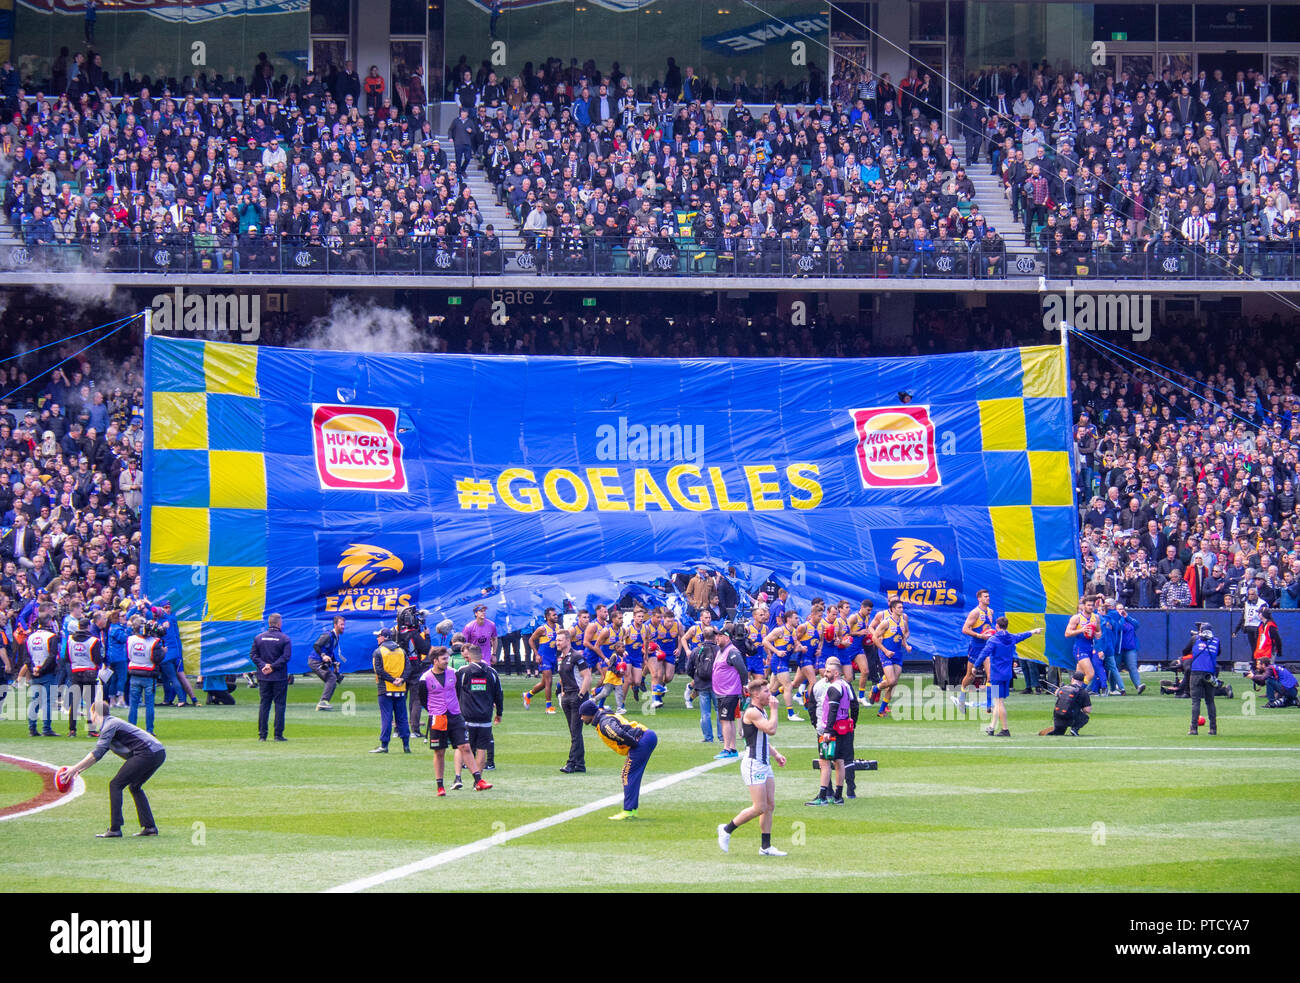 West Coast Eagles Football club footballers running through banner at 2018 AFL Grand Final at MCG Melbourne Victoria Australia. - Stock Image